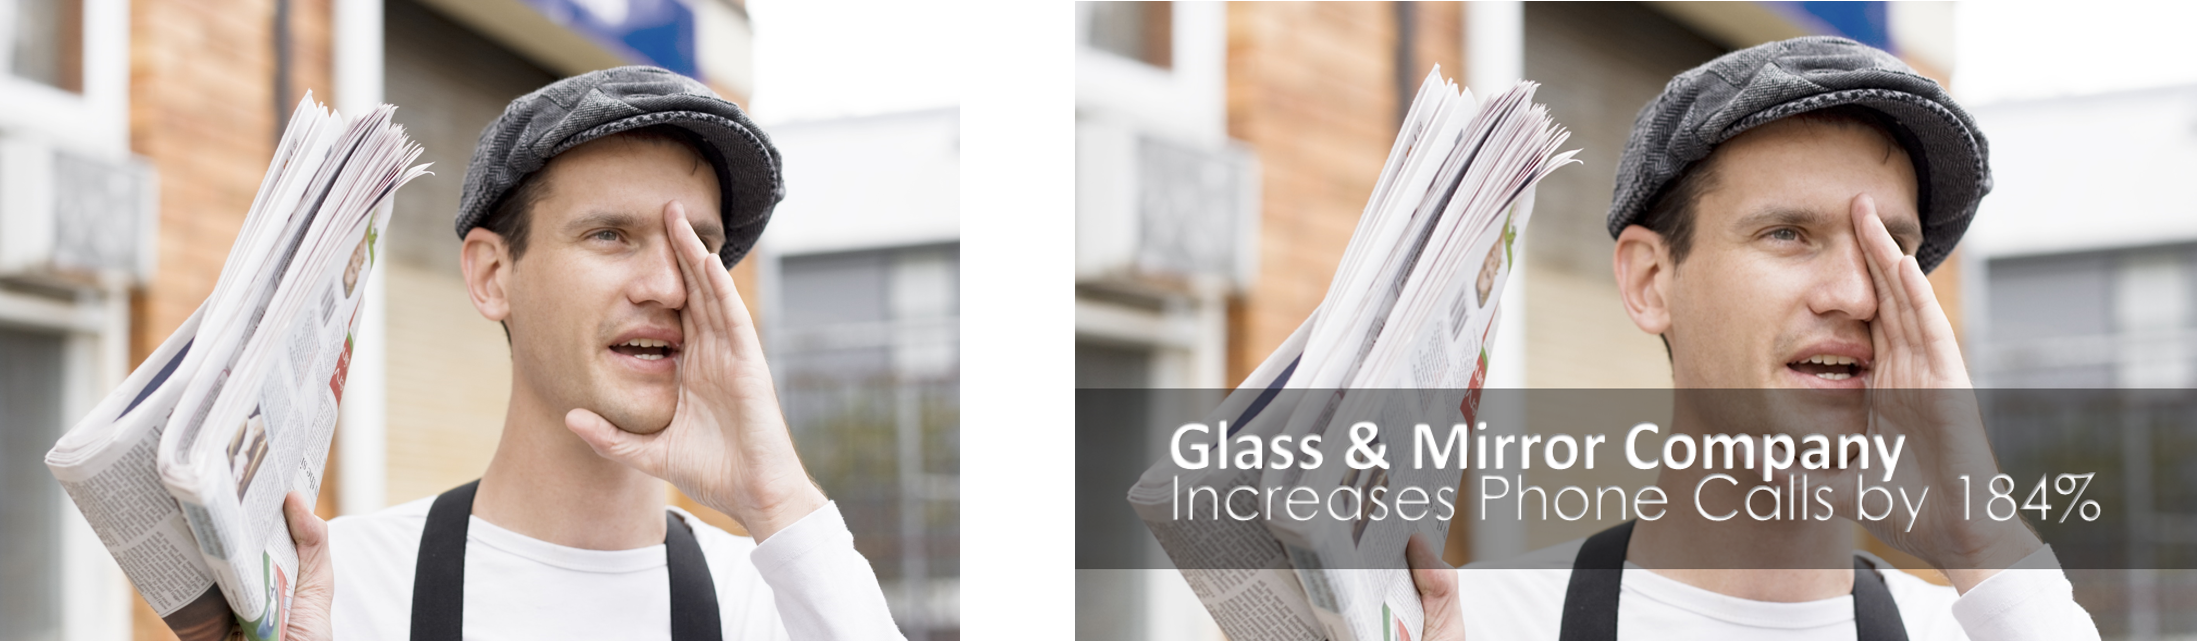 What Impact did a Website Redesign have on this Glass & Mirror Company?